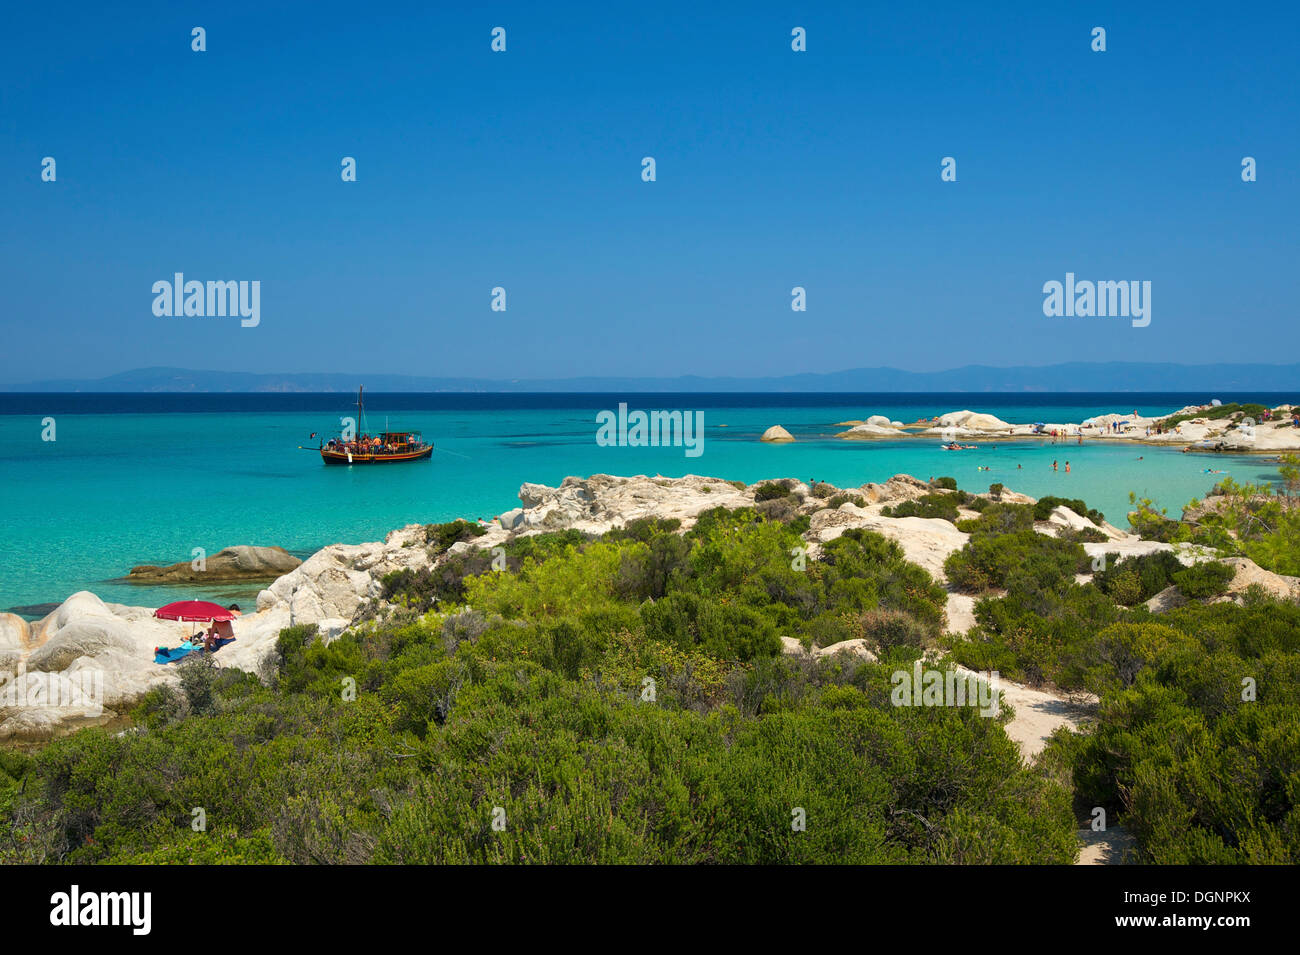 Portokali Beach, Kavourotypes, Sithonia, Chalkidiki, Greece Stock Photo